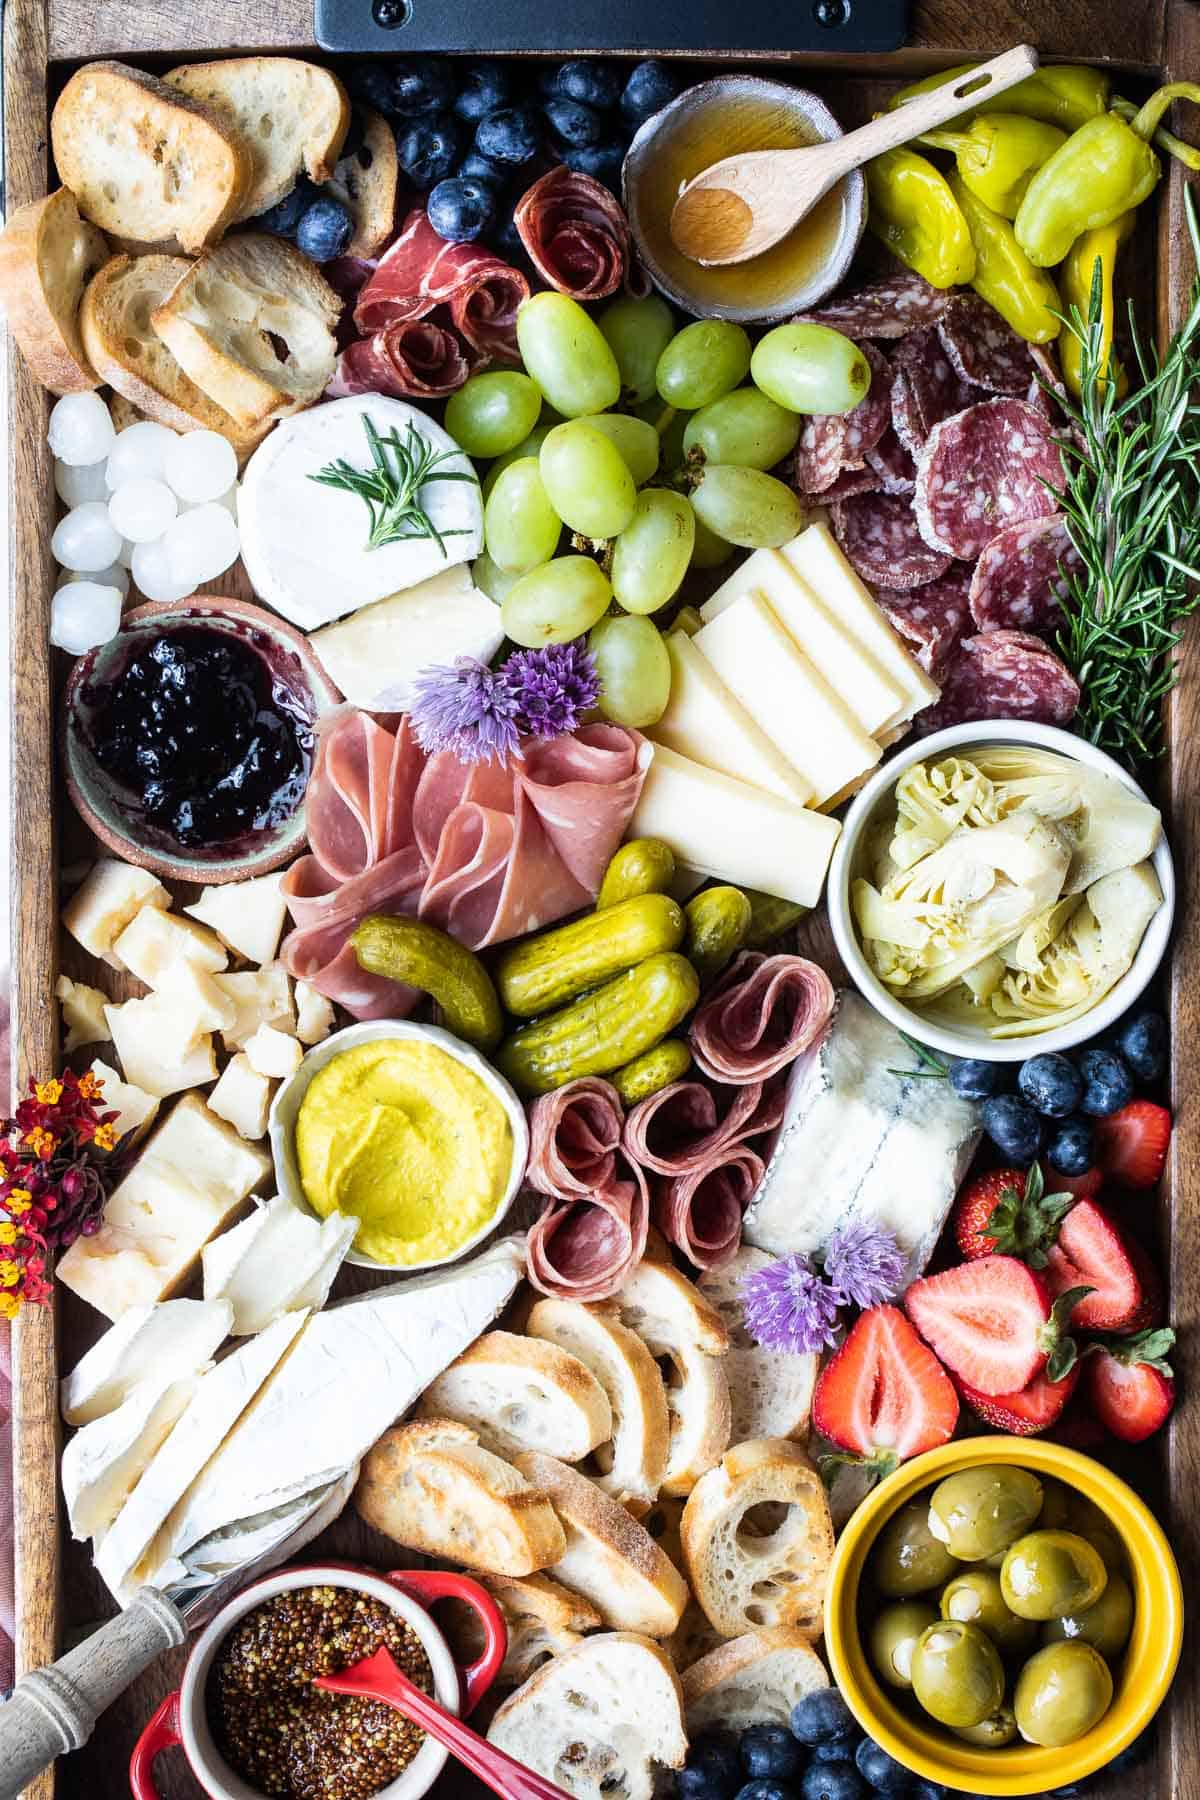 Charcuterie platter filled with meats, cheese and fresh fruits